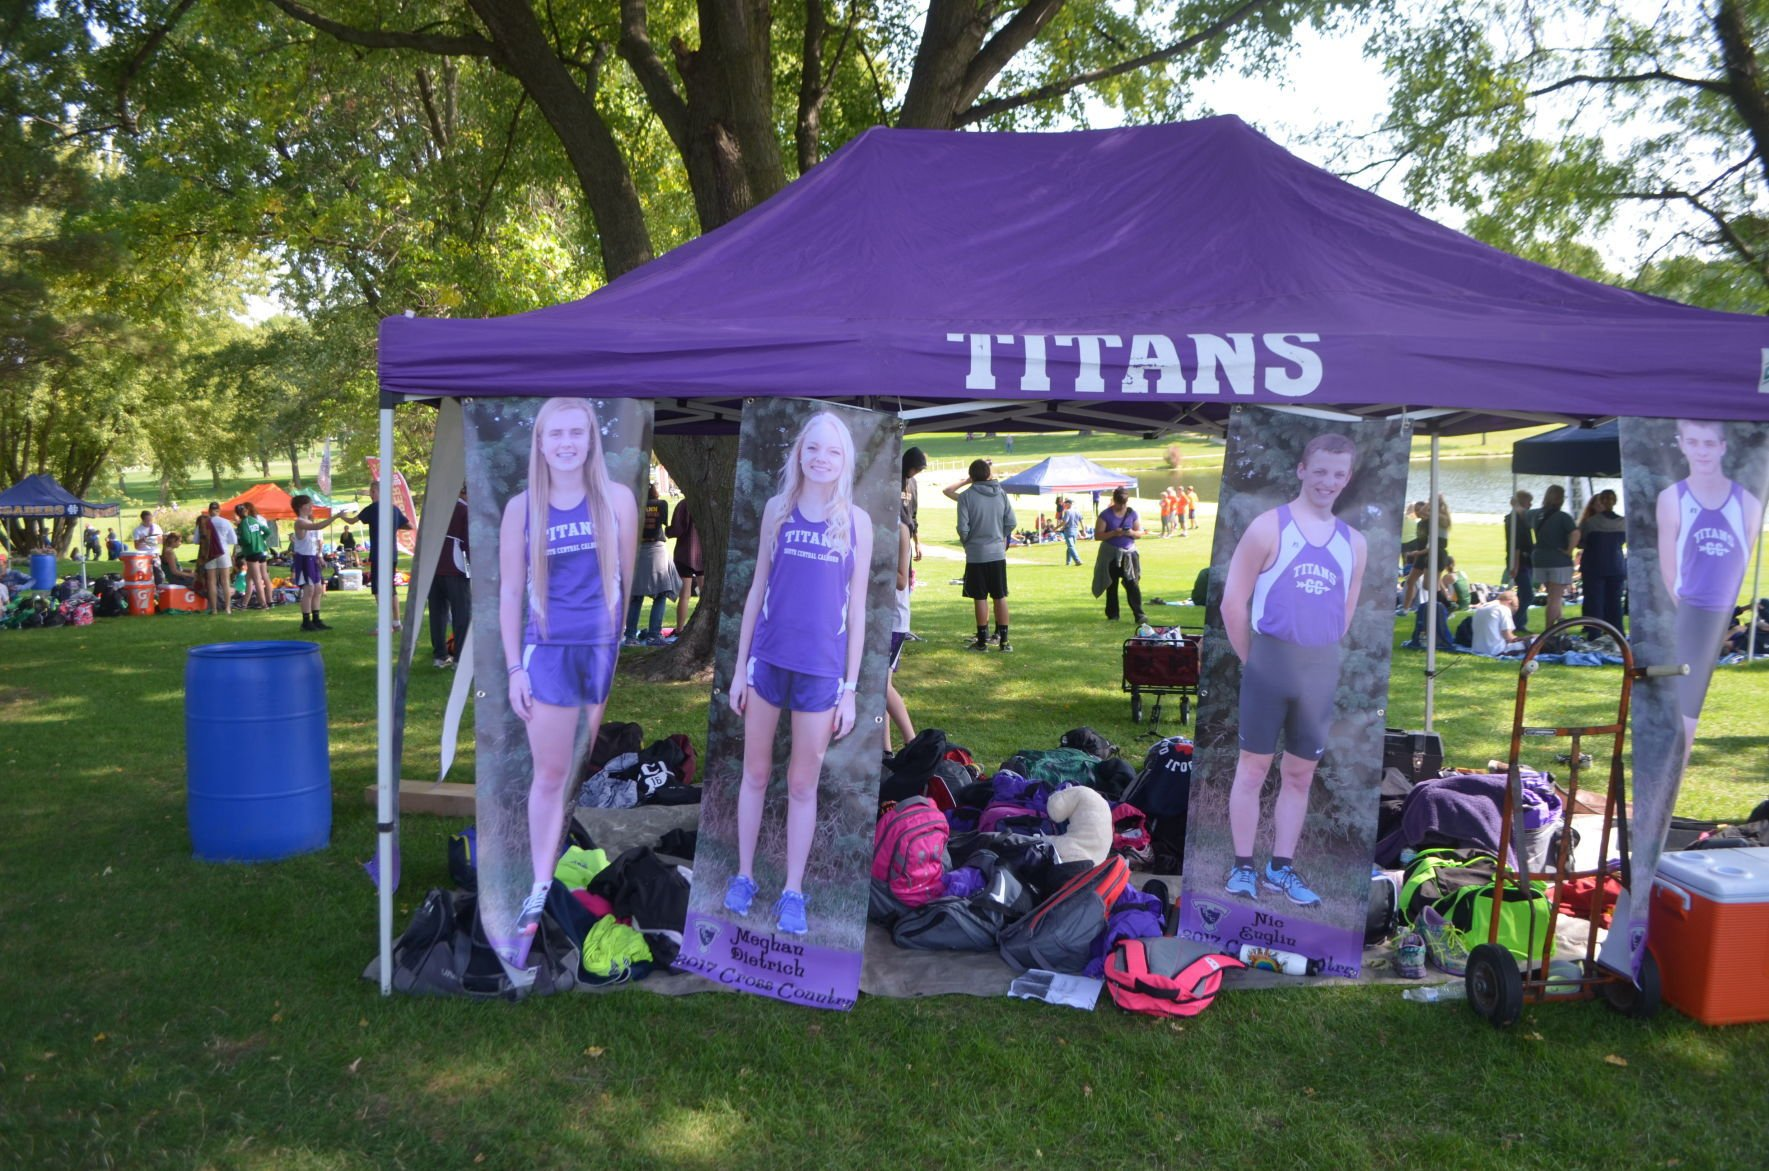 The cross country c&site for the South Central Calhoun Titans boats of a tent and life-size fabric posters of the student-athletes. & Cross country campsites move with the times | Siouxland Life ...